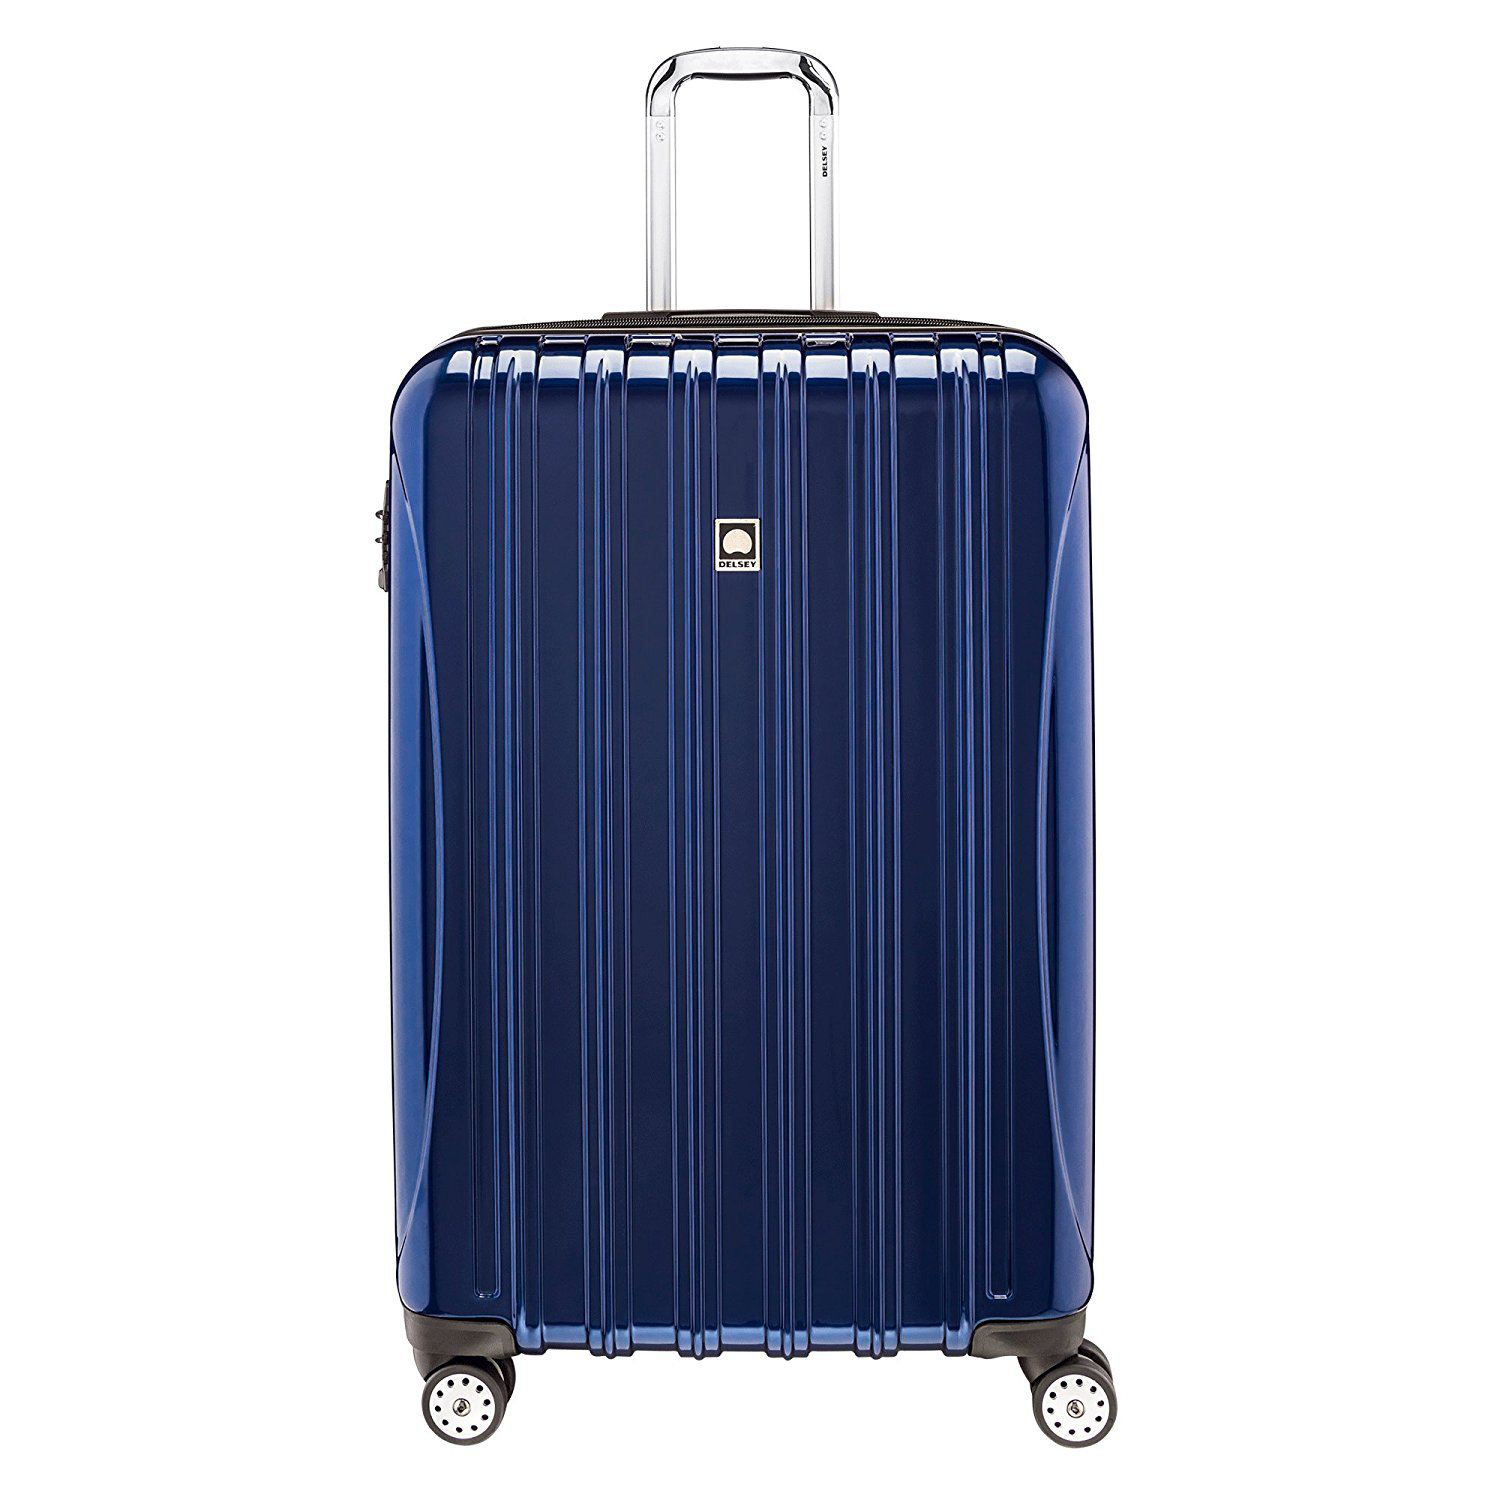 Best Overall  Delsey Luggage Helium Aero Expandable Spinner Trolley  (29-Inch) 96d1632fb1b9a